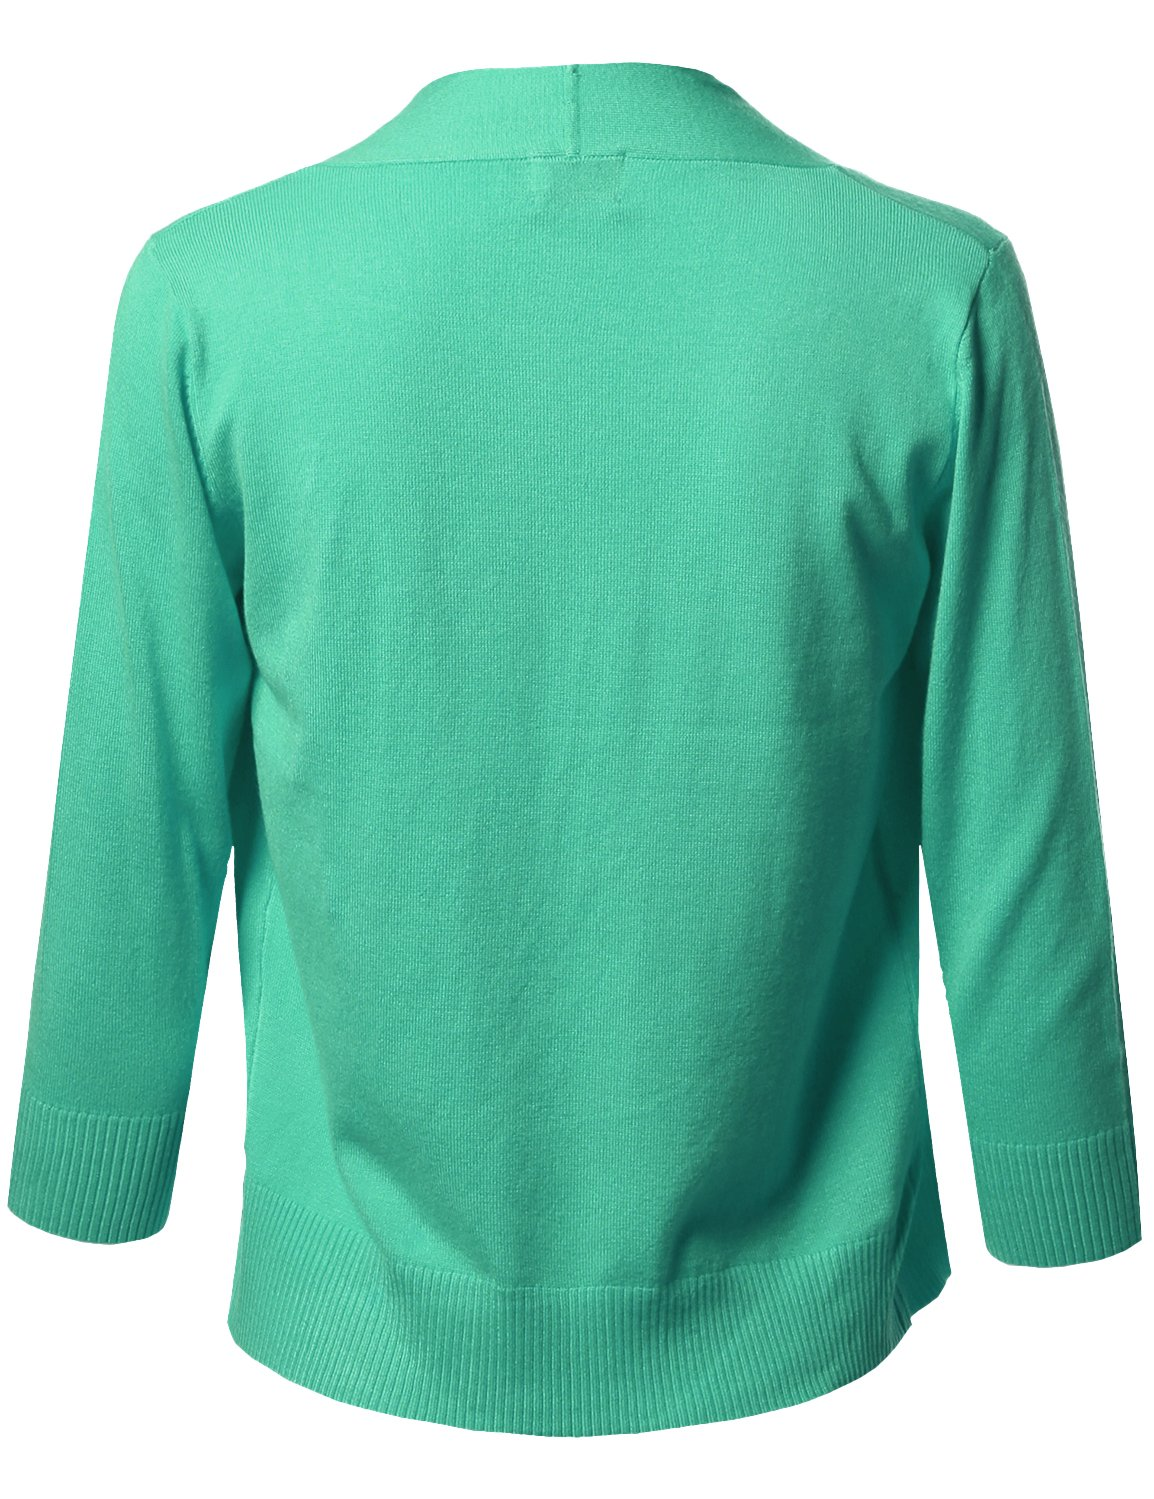 Awesome21 Solid Soft Stretch 3/4 Sleeve Layer Bolero Cardigan Green Size XL by Awesome21 (Image #3)